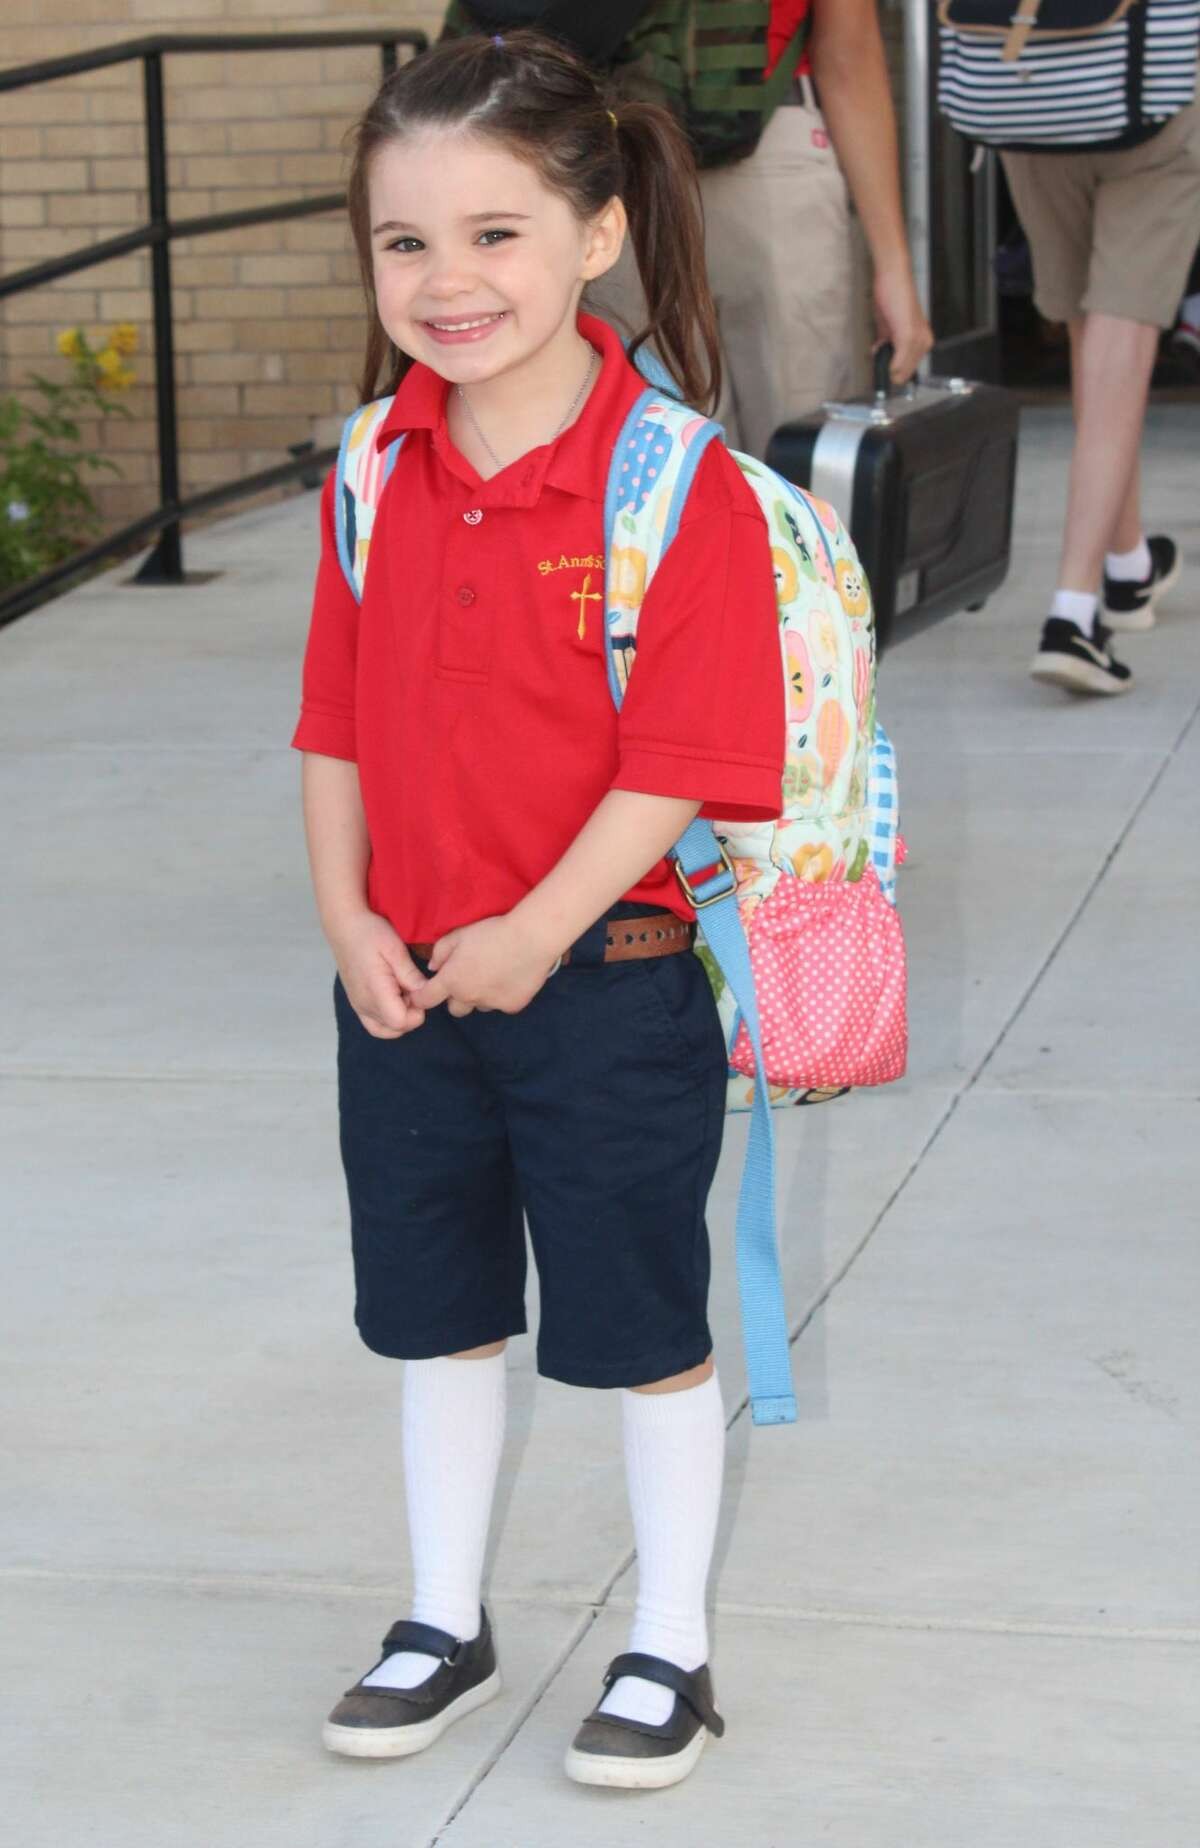 St. Ann's students return for the 2019-2020 school year.